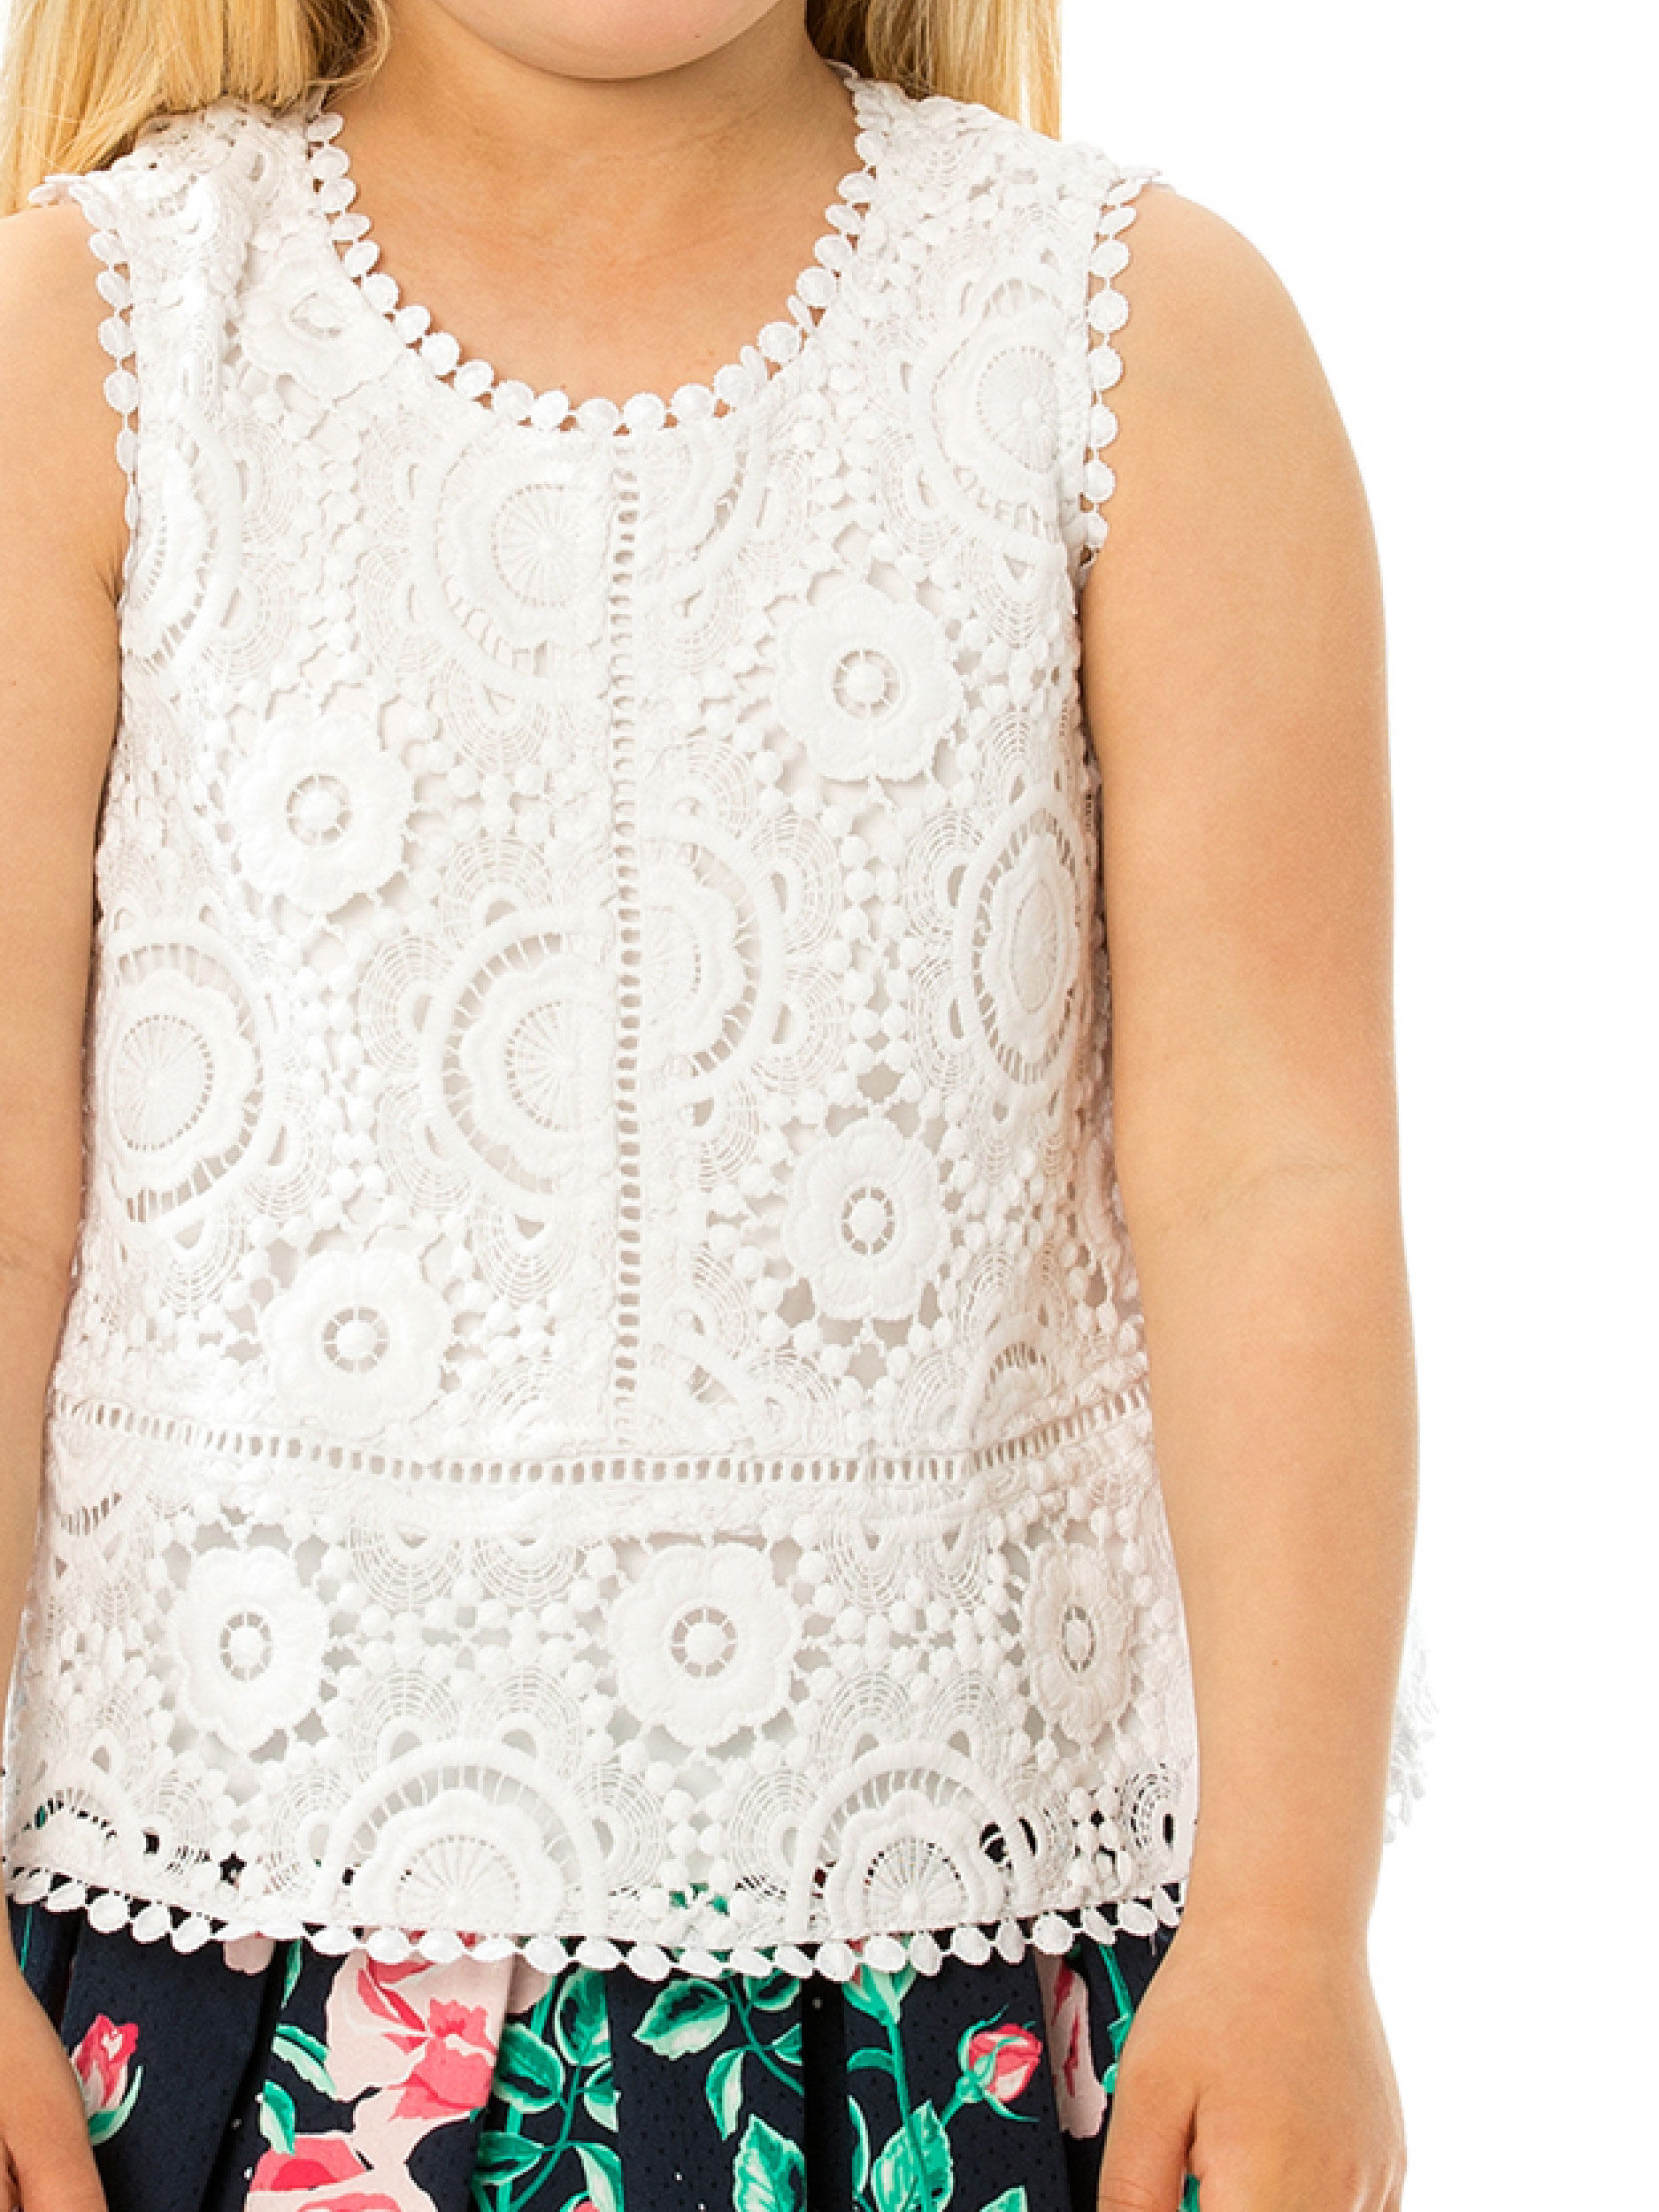 3-7 Lace Top